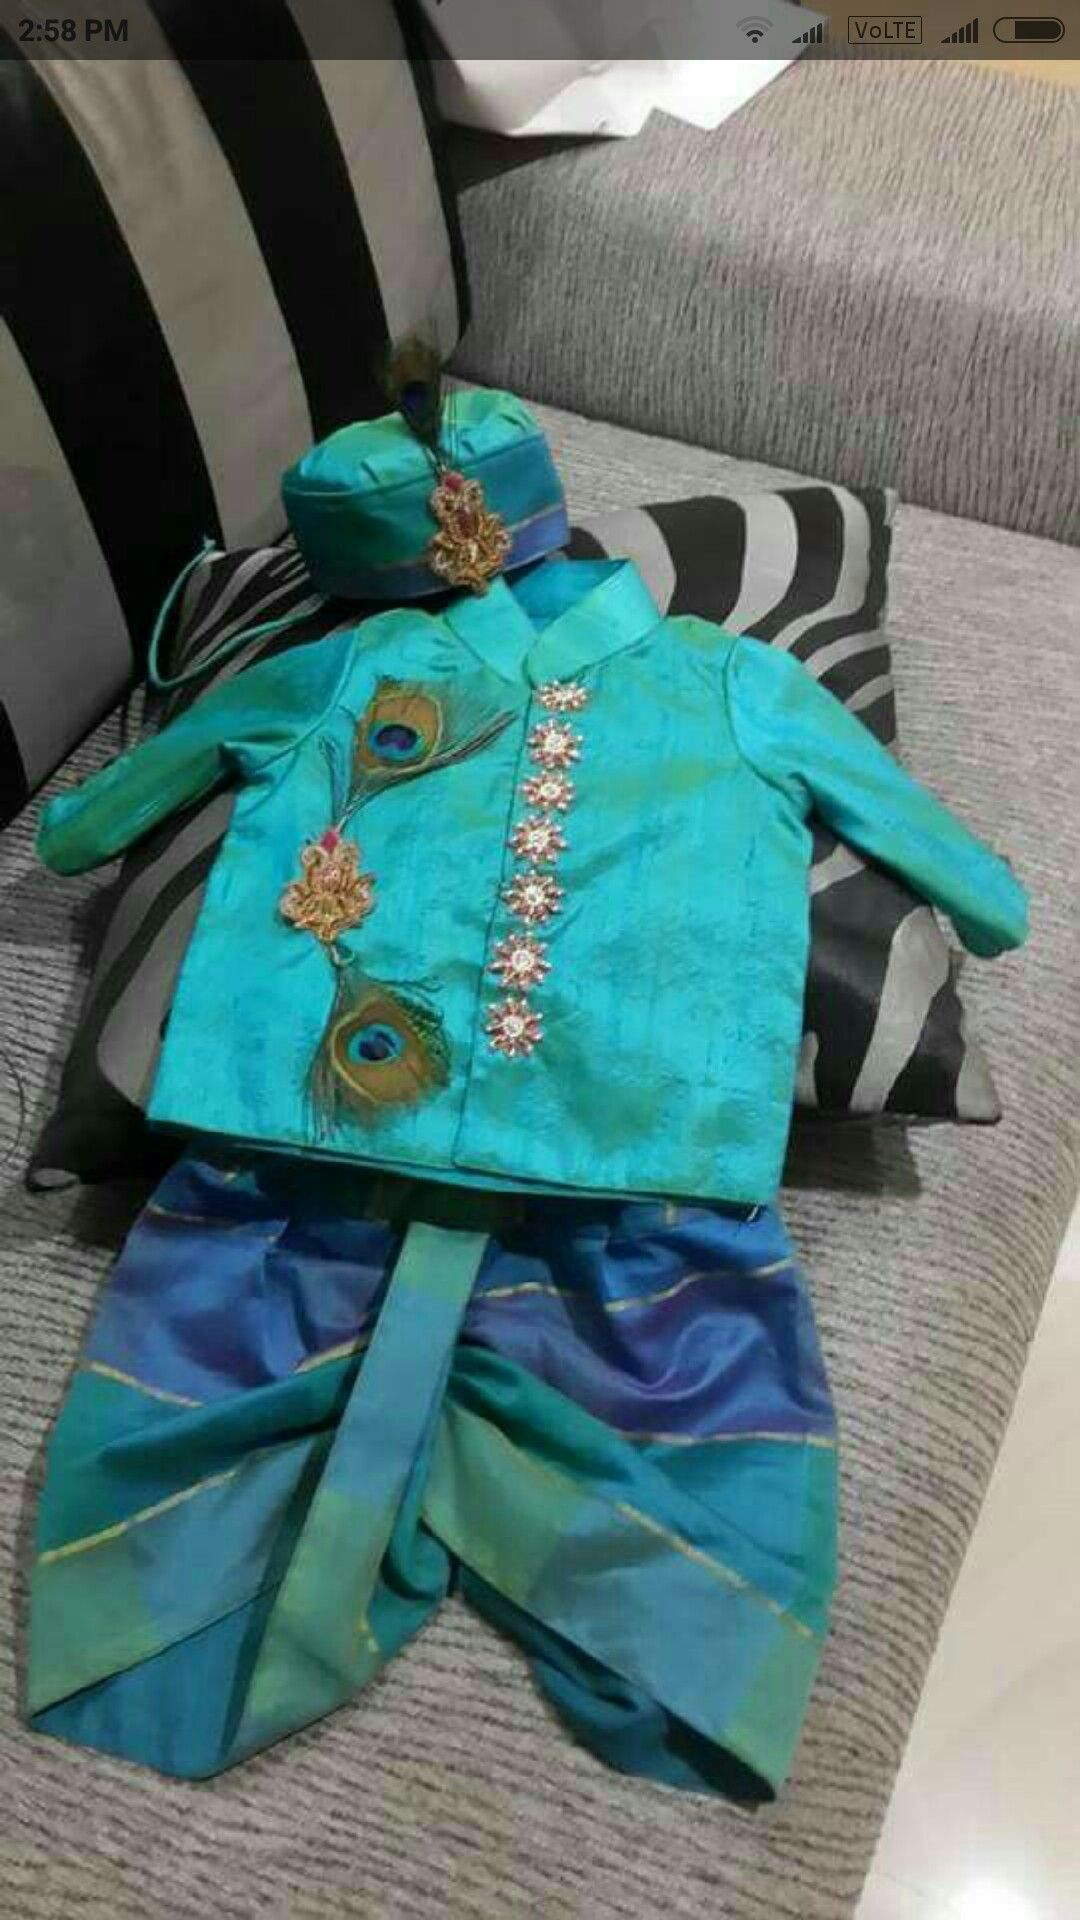 Pin by Teju Reddy on kids clothing | Pinterest | Kid clothing ...